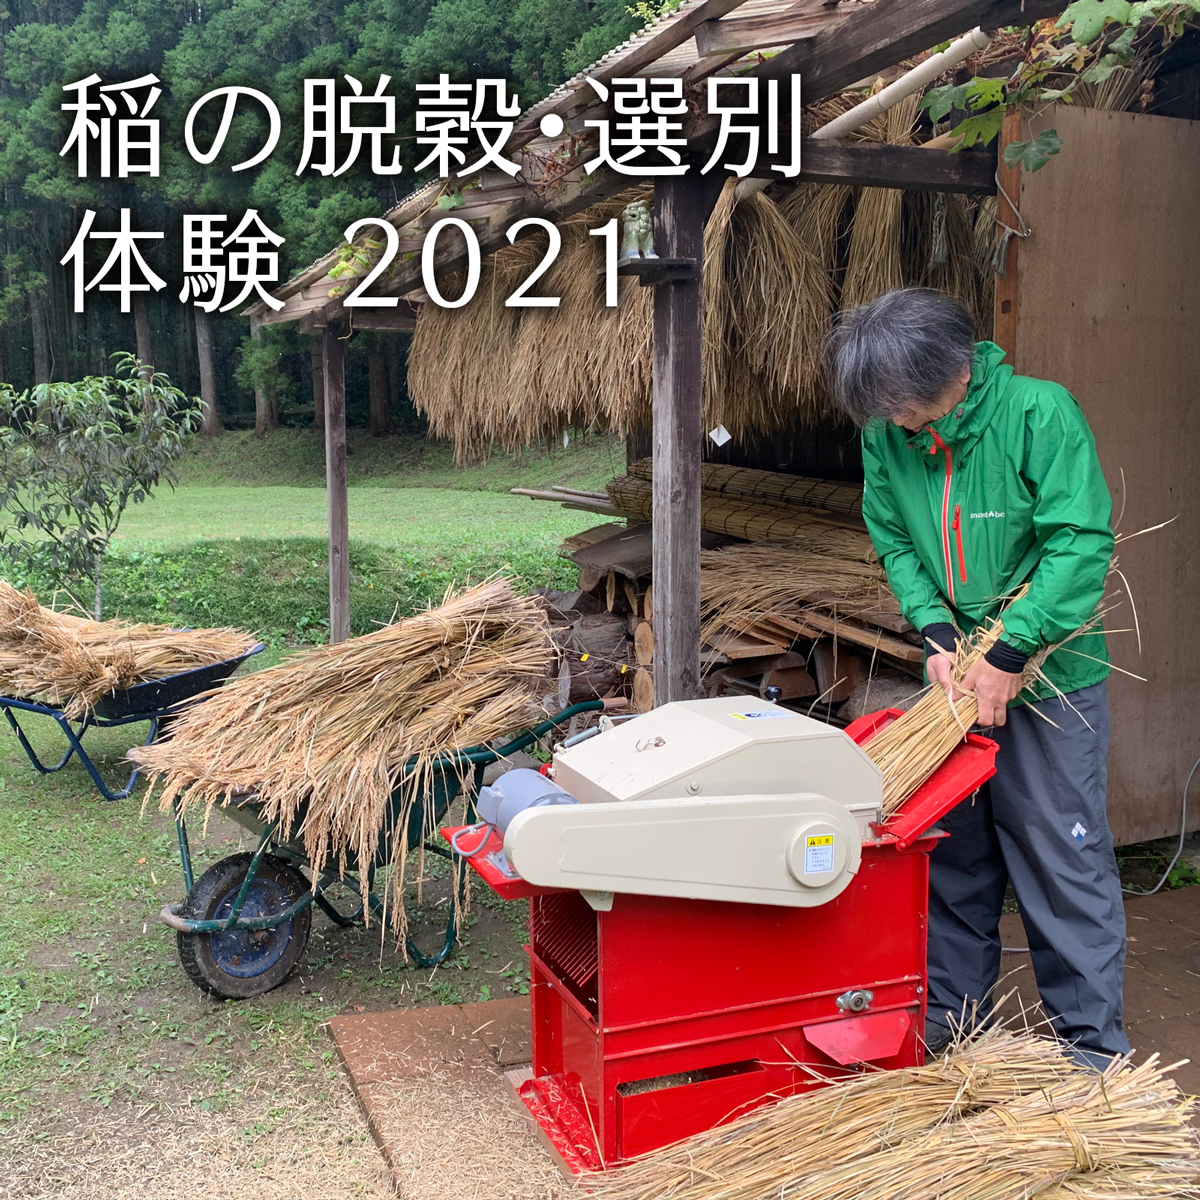 You are currently viewing 稲の脱穀・選別ワークショップ 2021